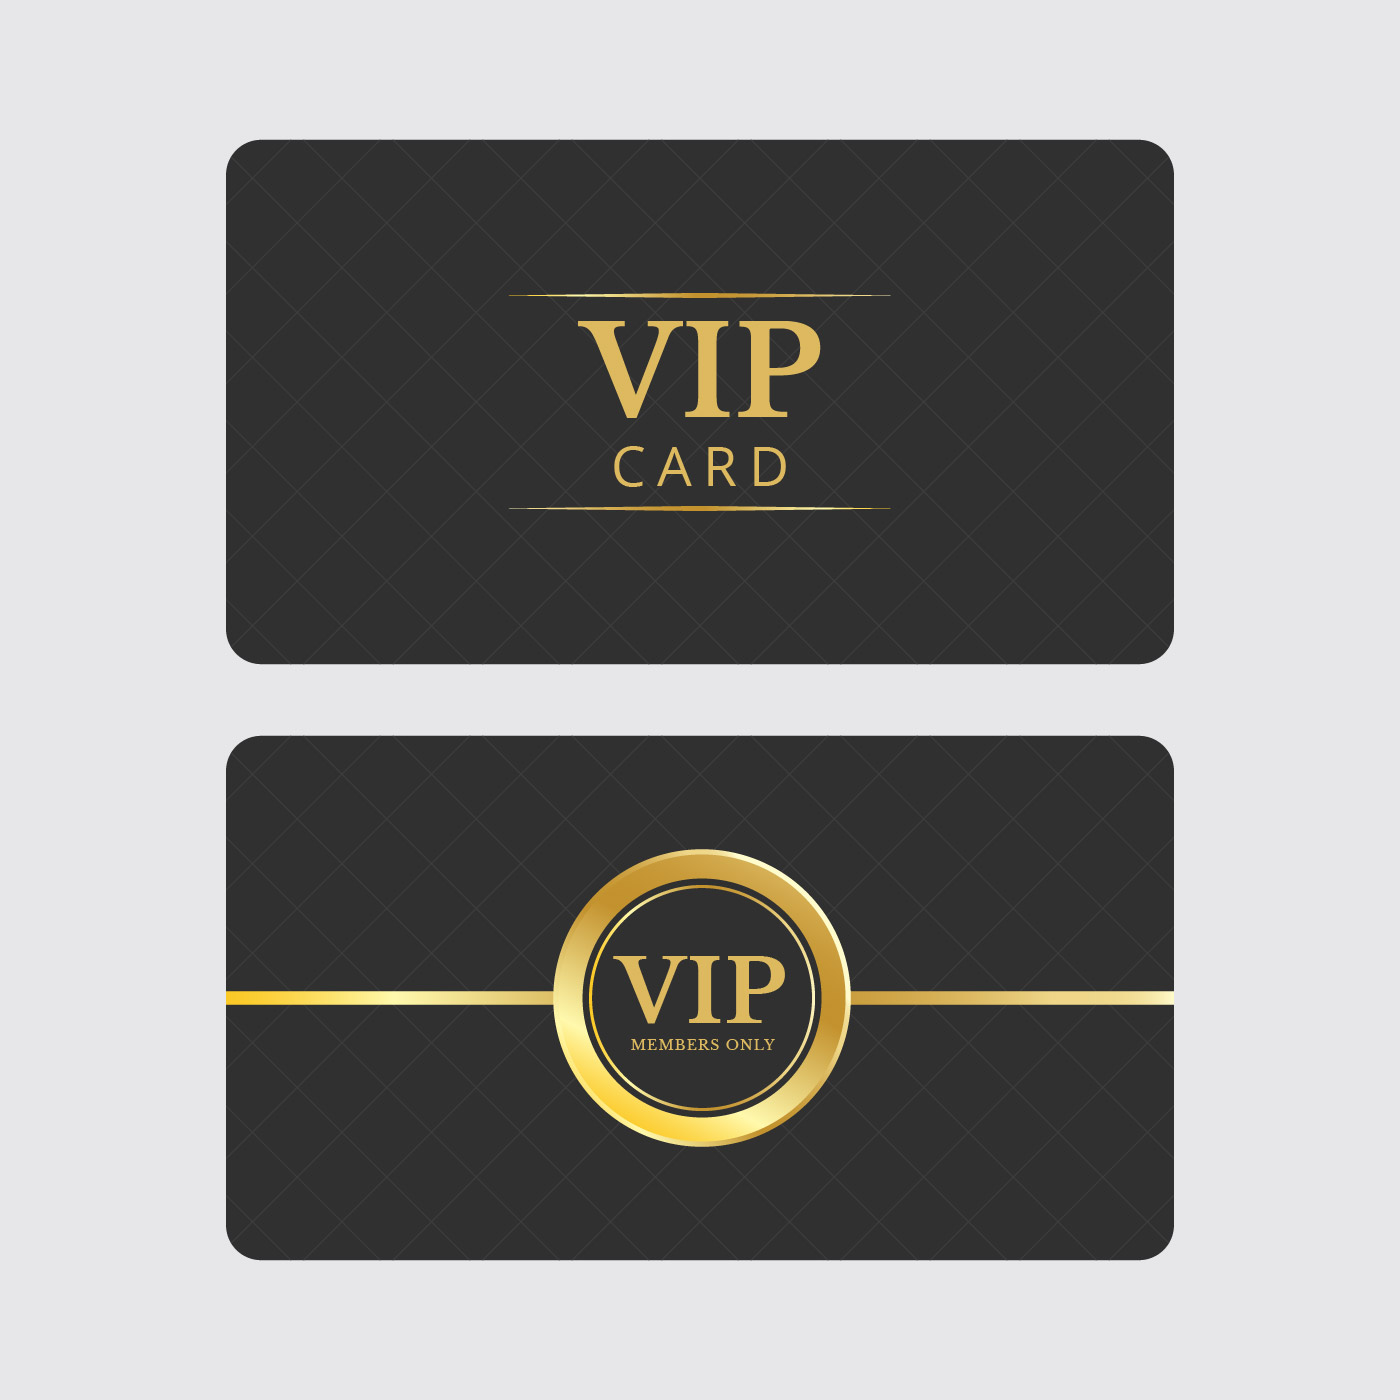 Vip Card Free Vector Art 23576 Free Downloads